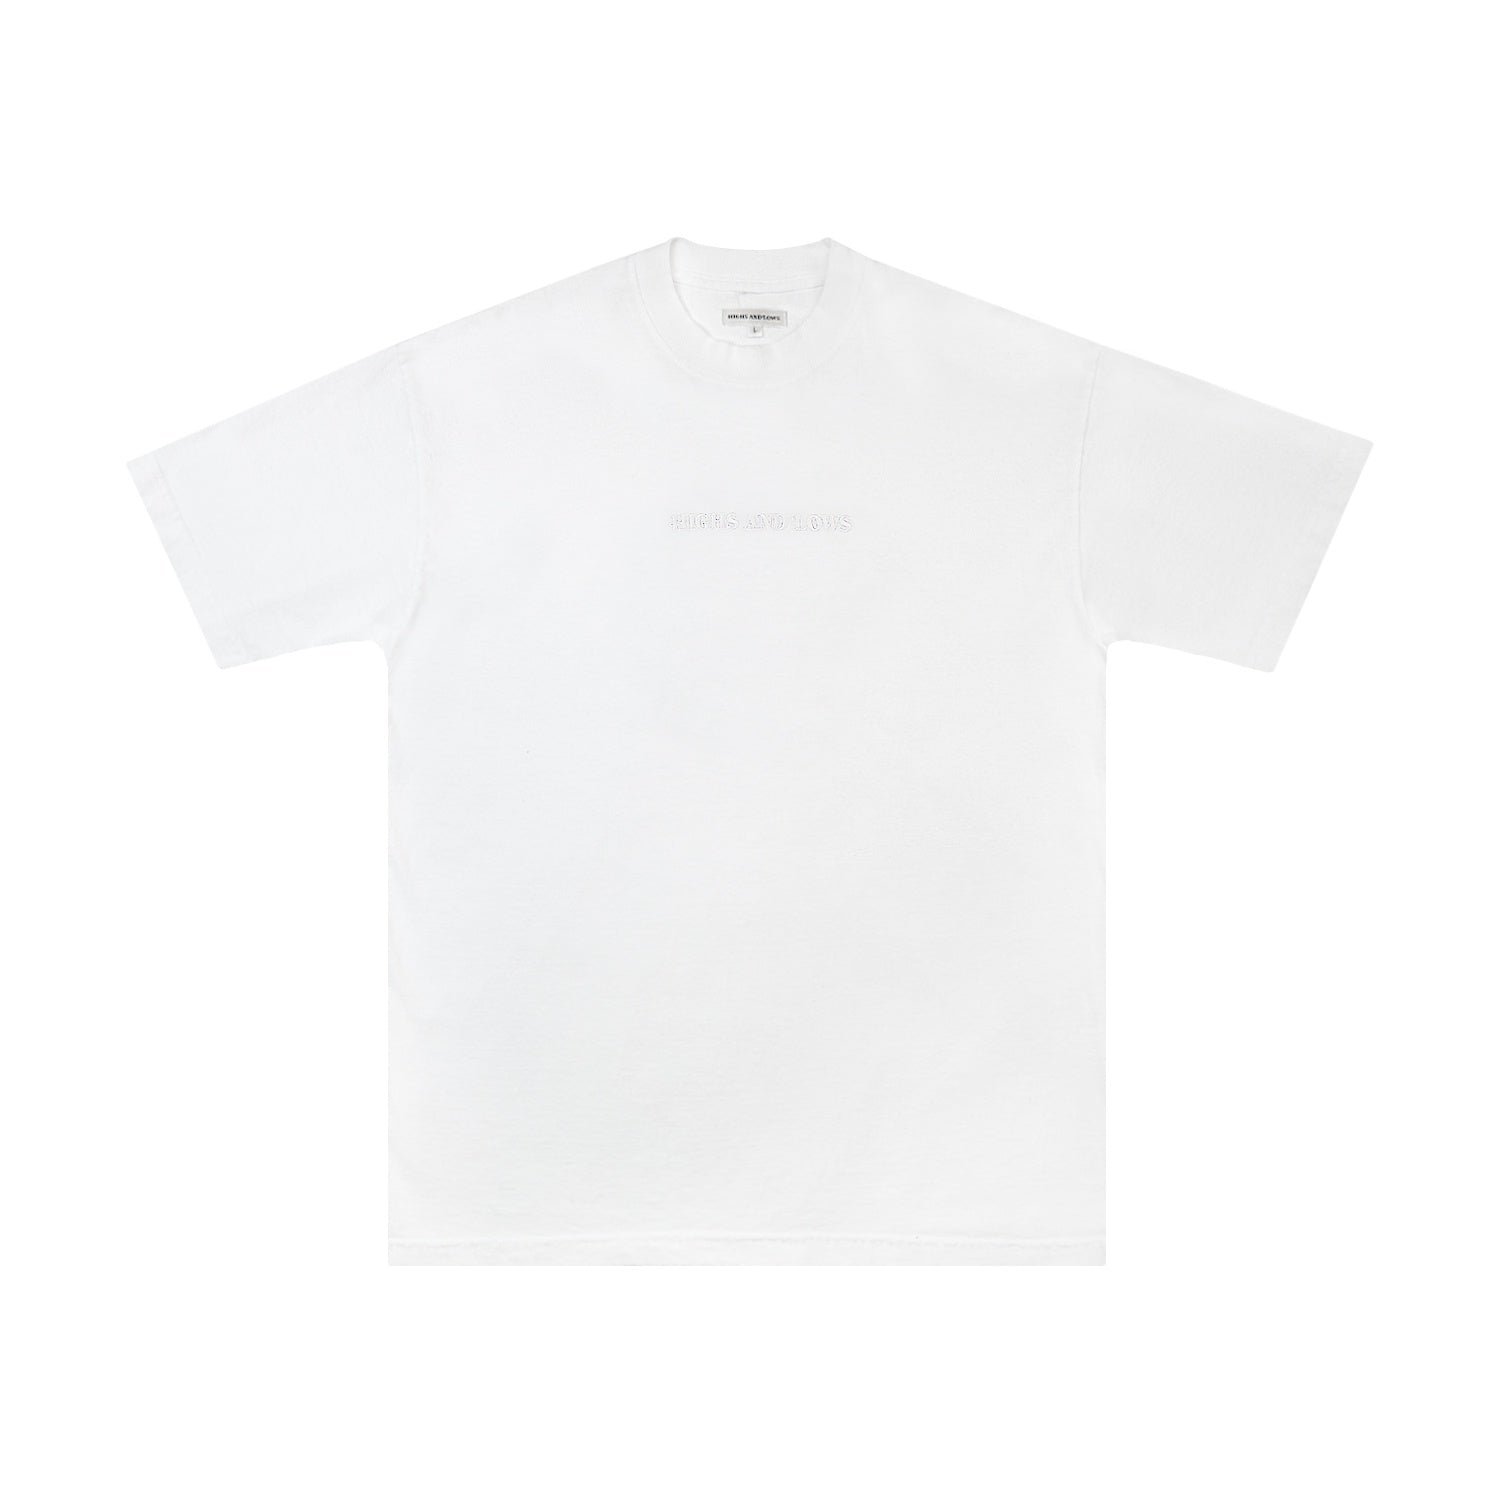 HAL SS20 Bar Logo T-Shirt - White